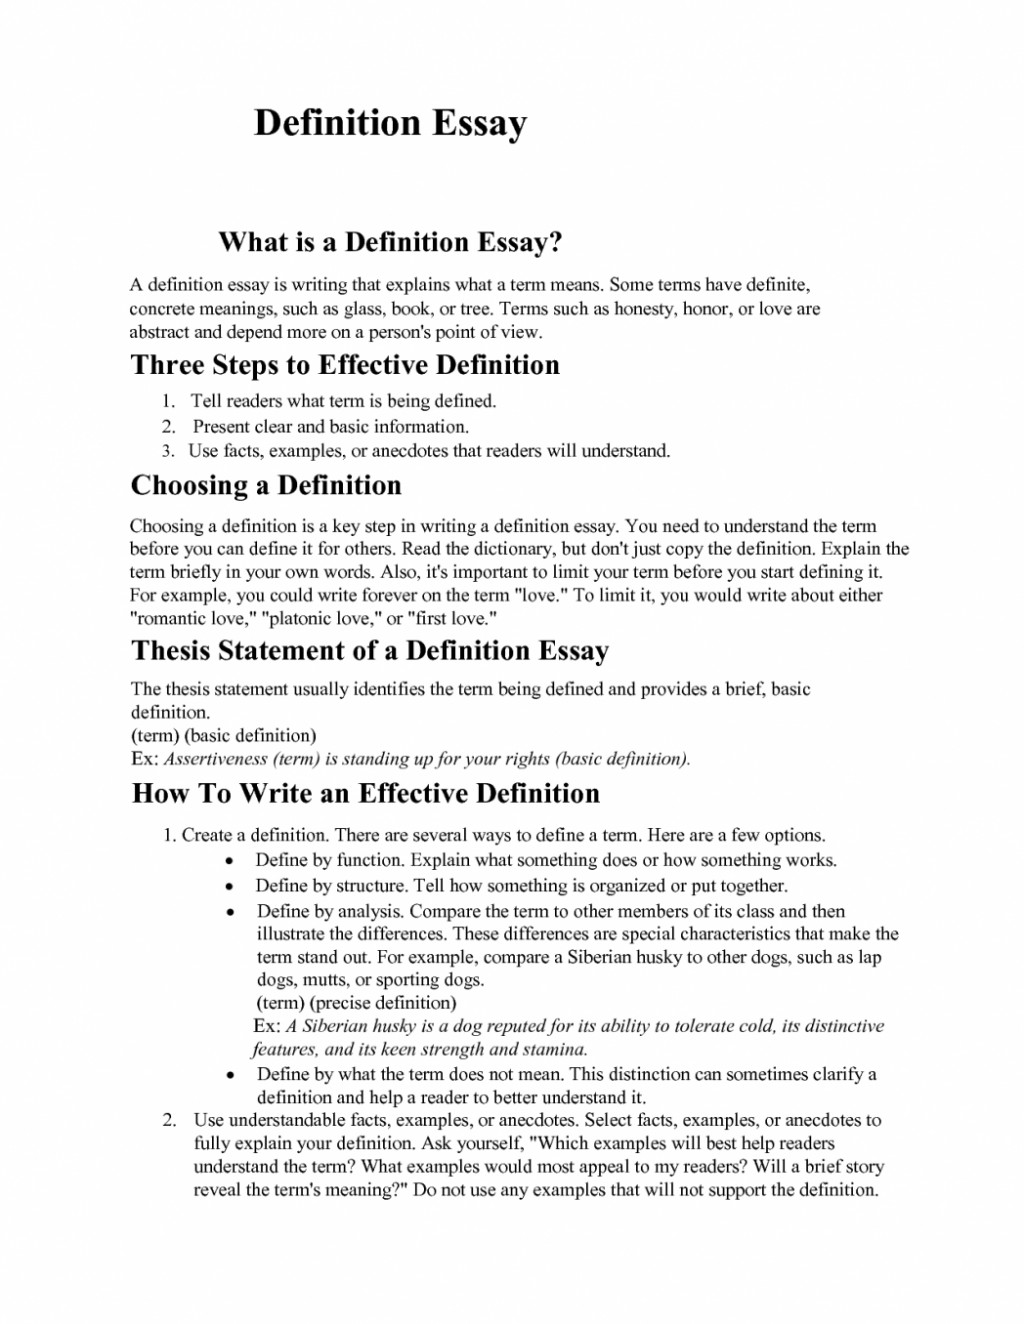 008 Definition Essay Outline Example Examples Friendship Writing Topics For An Define Academic Collection Of Solutions Success Creative And Pdf Argumentative Phenomenal Sample Extended Large